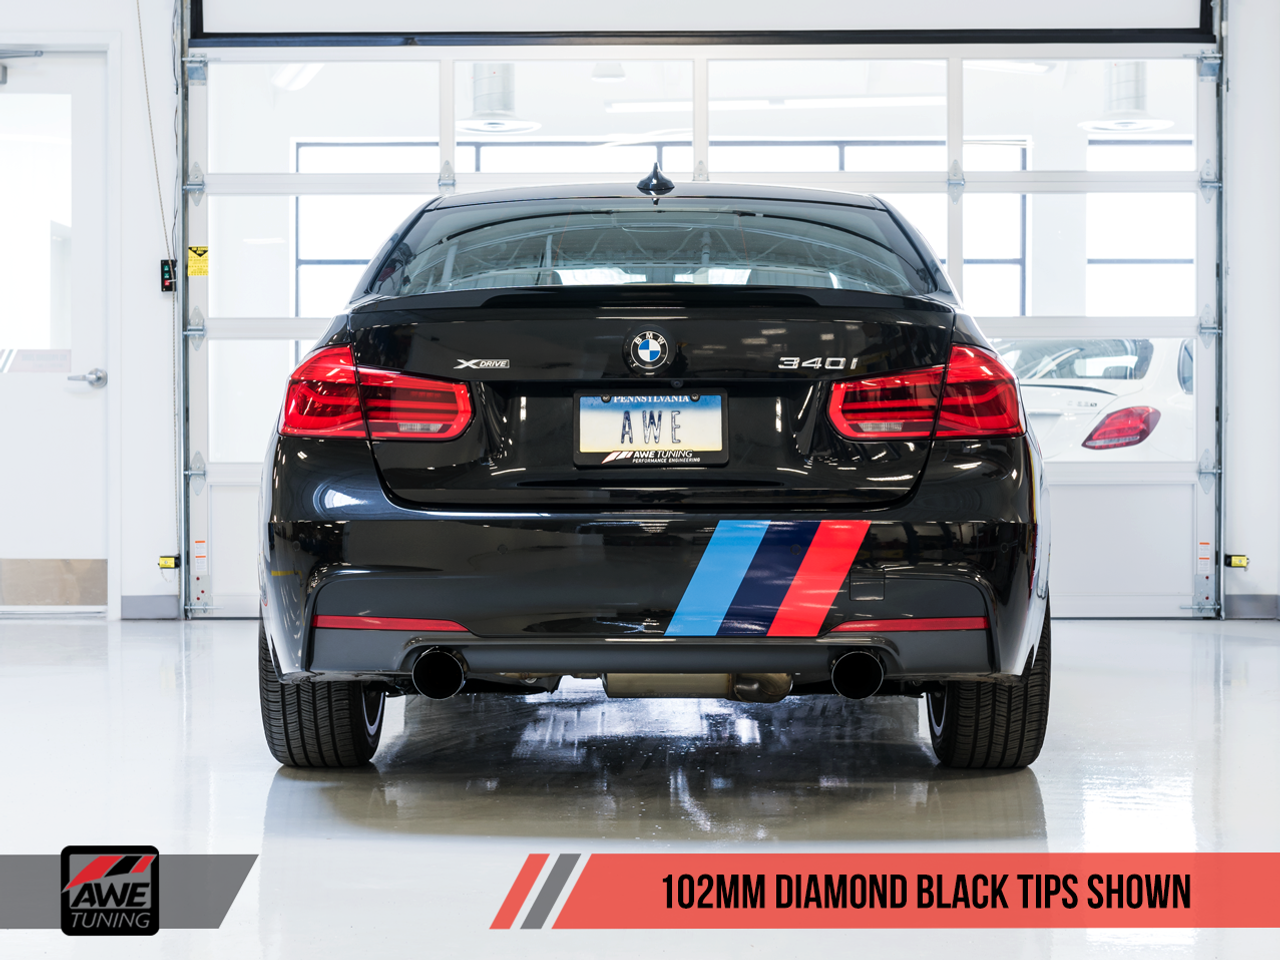 AWE Tuning BMW F3x 340i and 440i Touring Edition Axle-Back Exhaust - 102mm Diamond Black Tailpipes